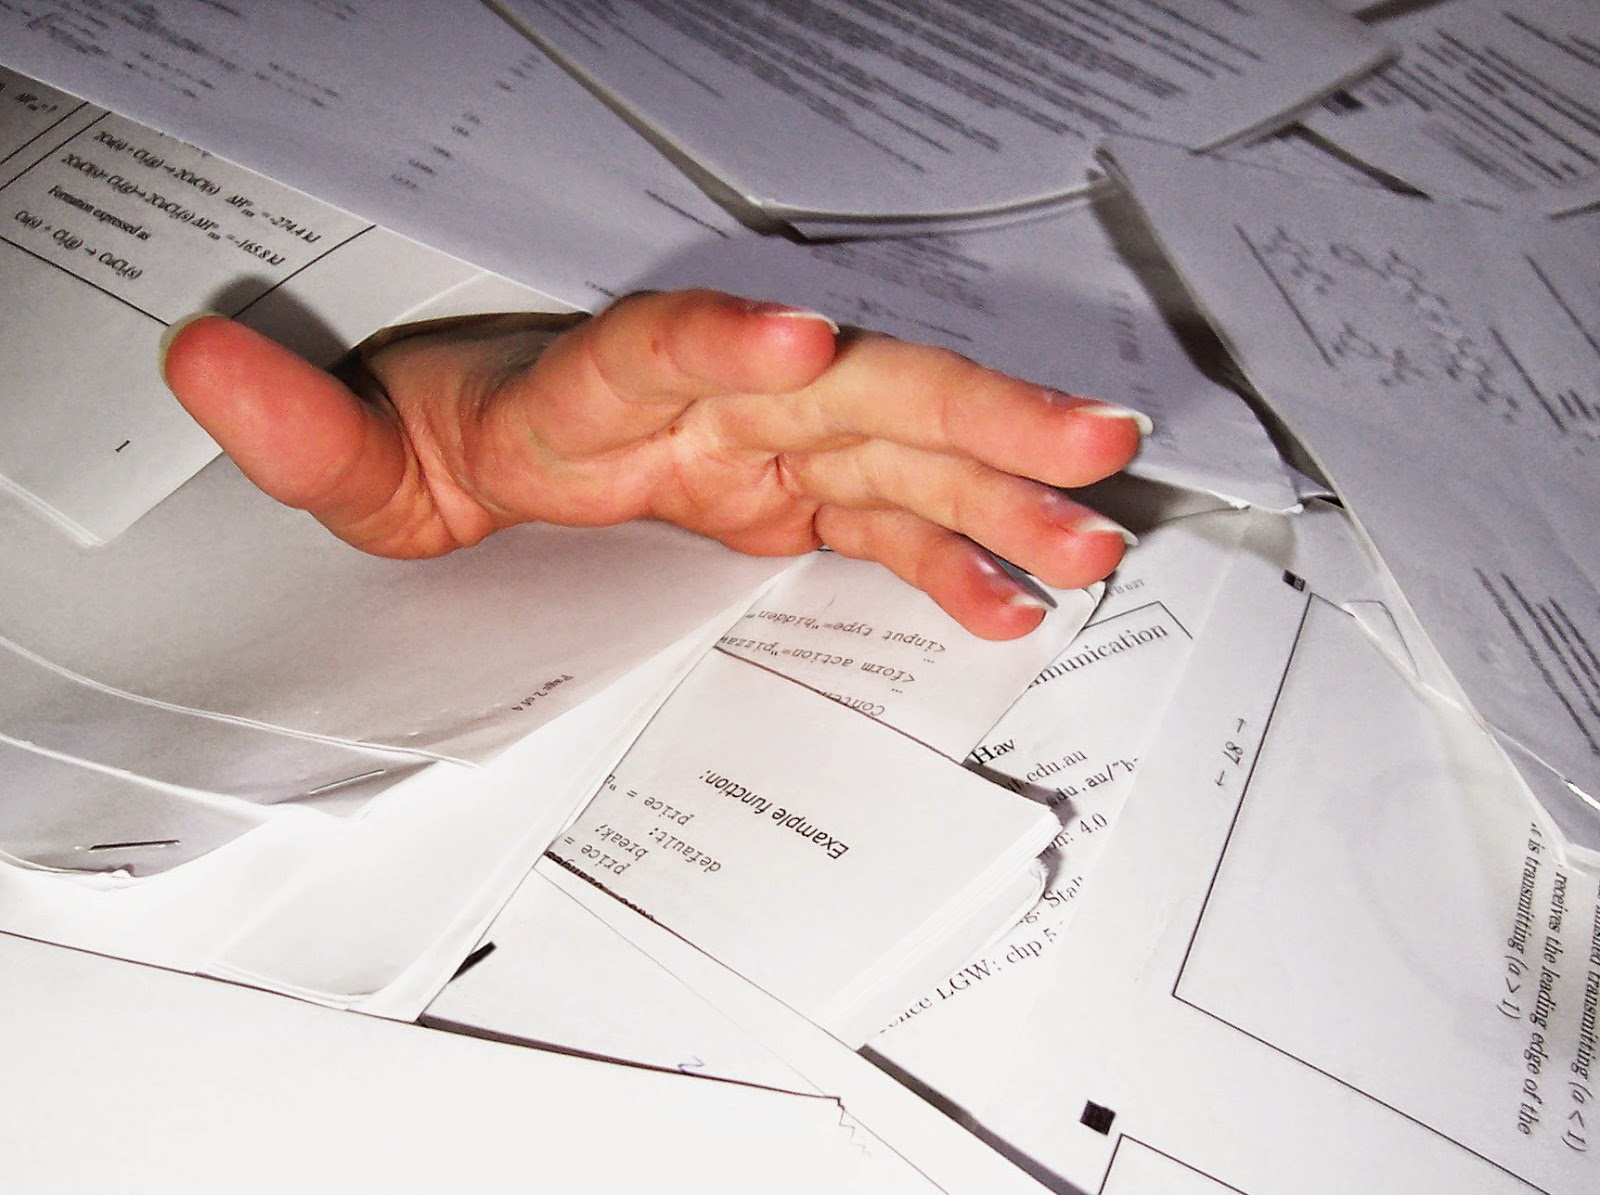 A hand reaching out of a huge pile of papers